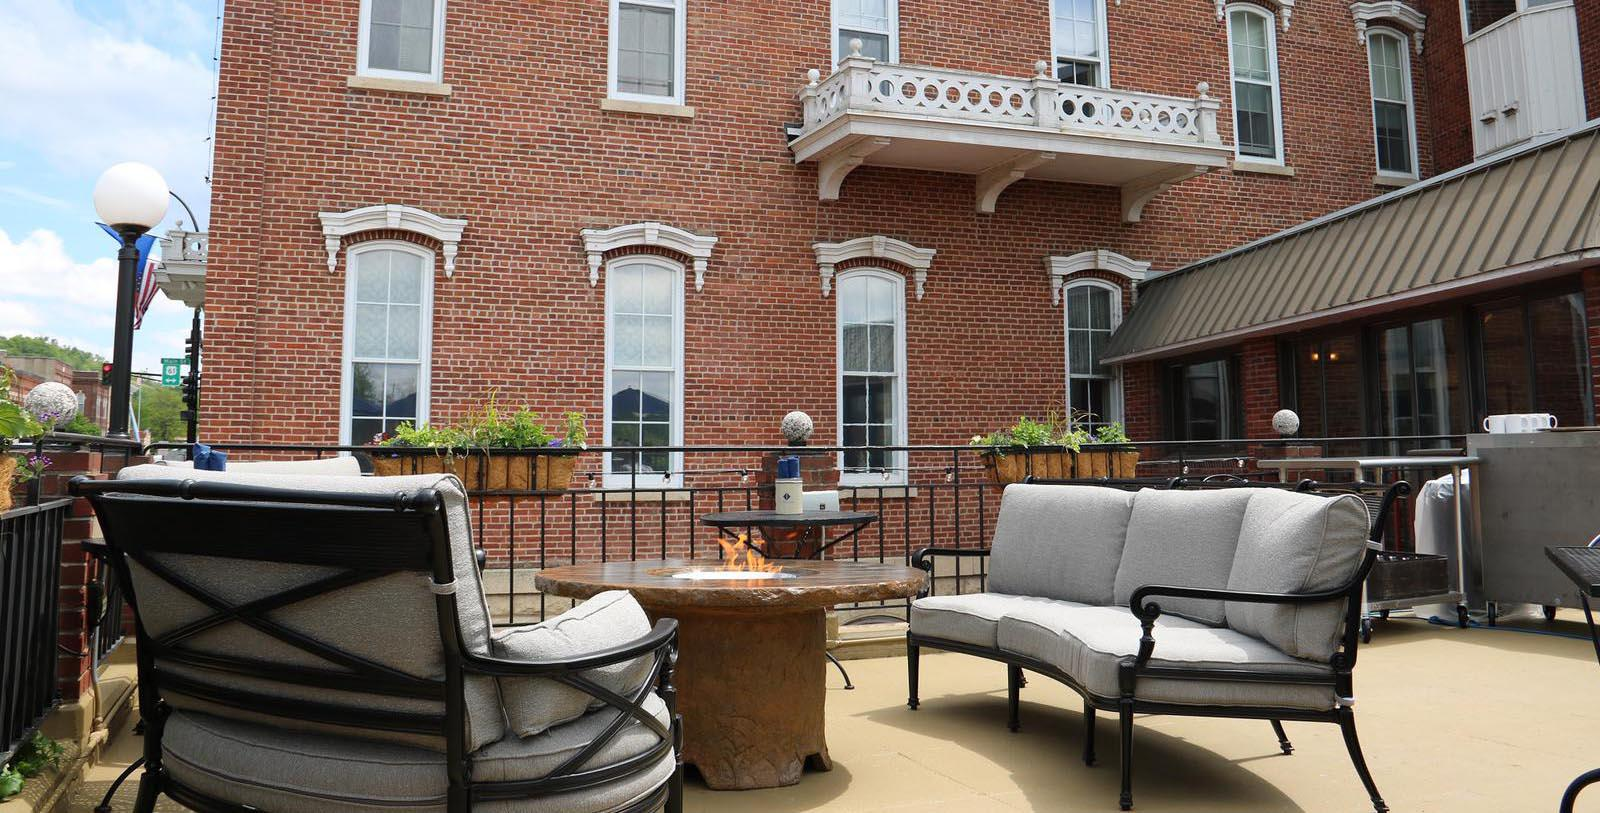 Image of Outdoor Seating Area St. James Hotel, 1875, Member of Historic Hotels of America, in Red Wing, Minnesota, Discover